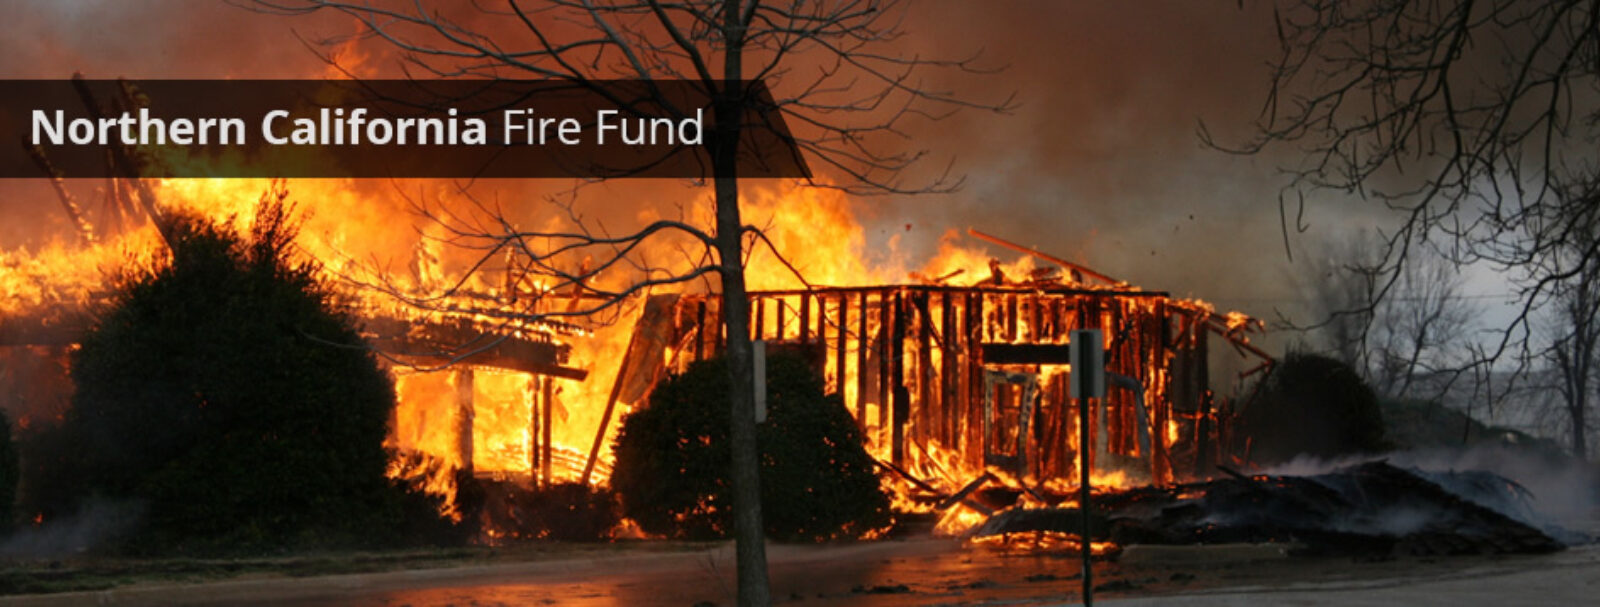 Northern California Fire Fund Established